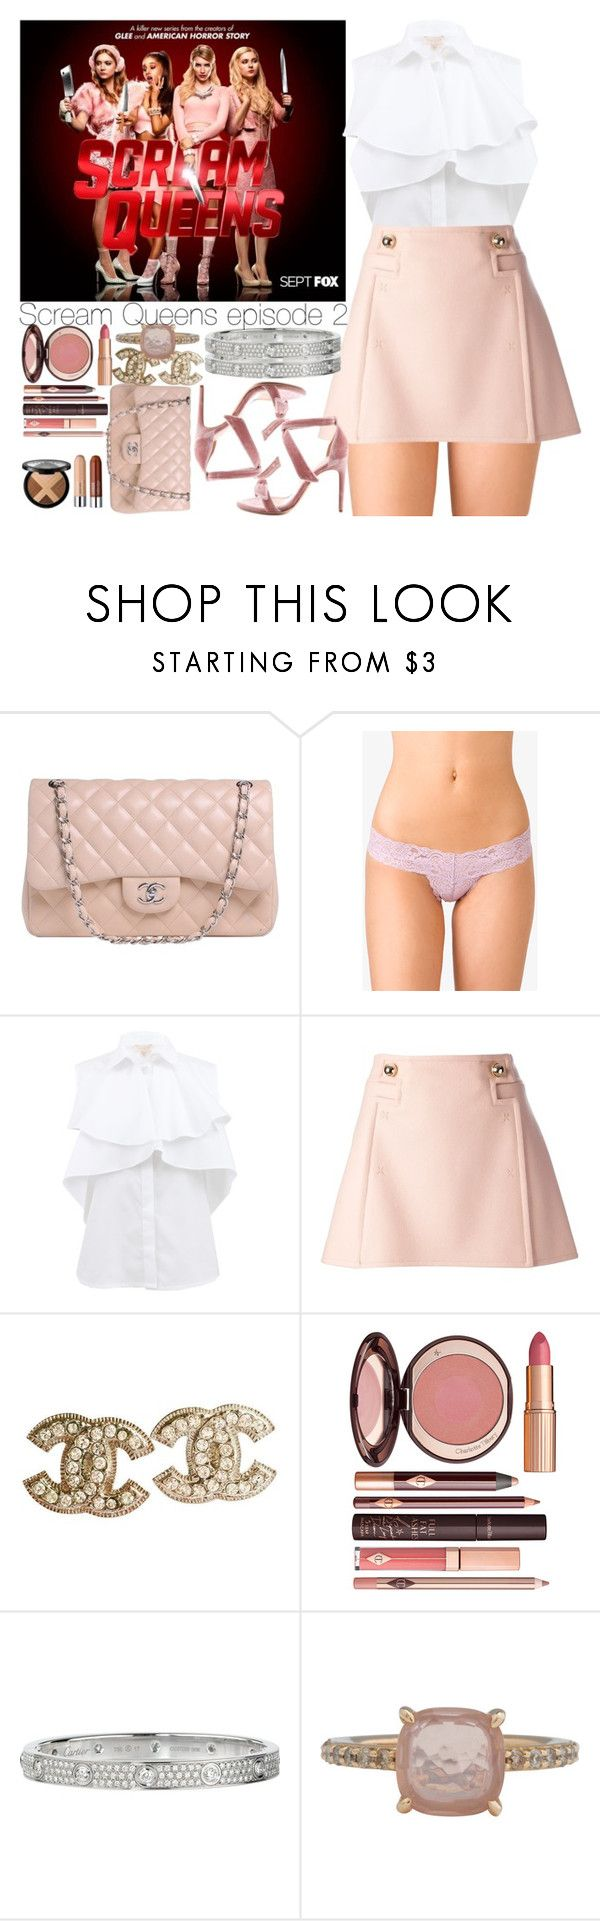 """Scream Queens episode 2"" by outfitsbynina9 ❤ liked on Polyvore featuring Chanel, Forever 21, Giambattista Valli, Frankie Morello, Charlotte Tilbury, Cartier and Pomellato"